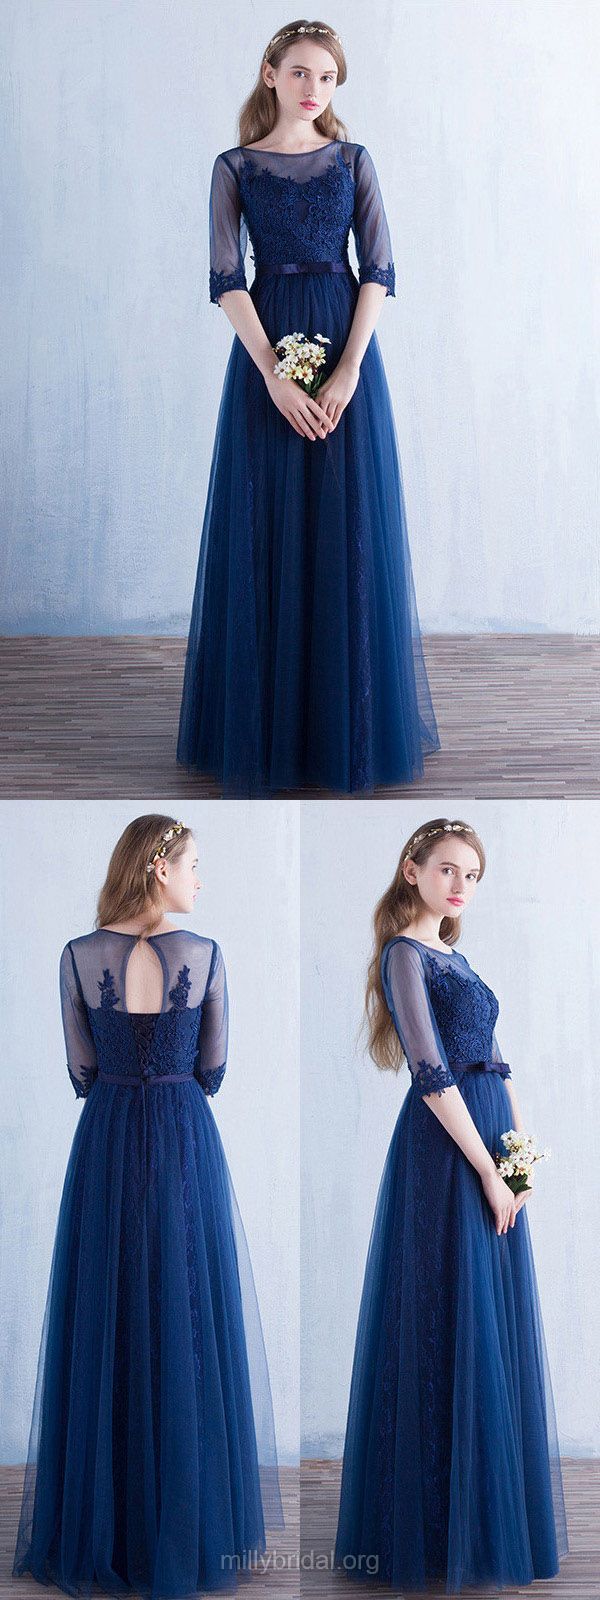 Blue Prom Dresses Long, 2018 Formal Dresses Lace, A-line Party Dresses Scoop Neck, Tulle Evening Gowns 1/2 Sleeve